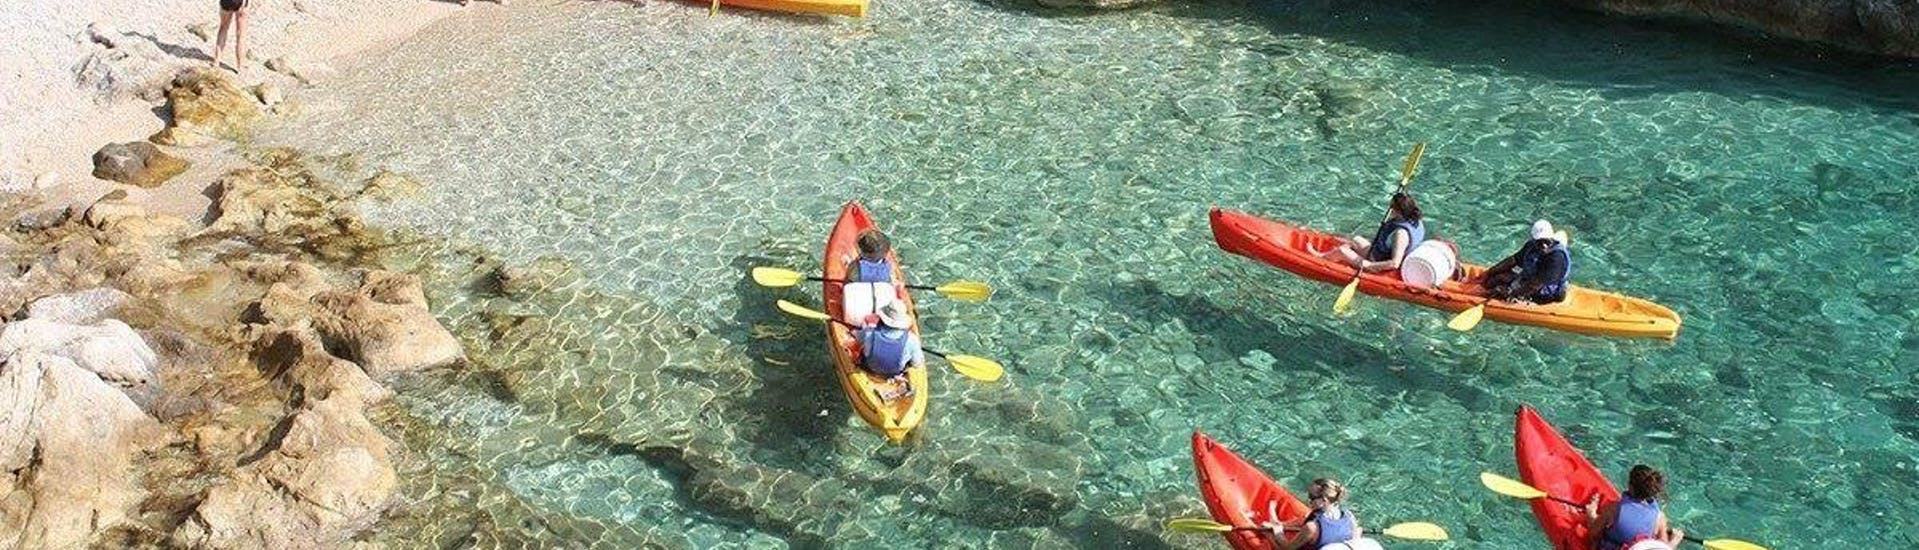 During the morning sea kayaking tour with swim & snorkel in Dalmatia, tourists are paddling on crystal clear waters with certified kayak guides from Adventure Dalmatia Dubrovnik.